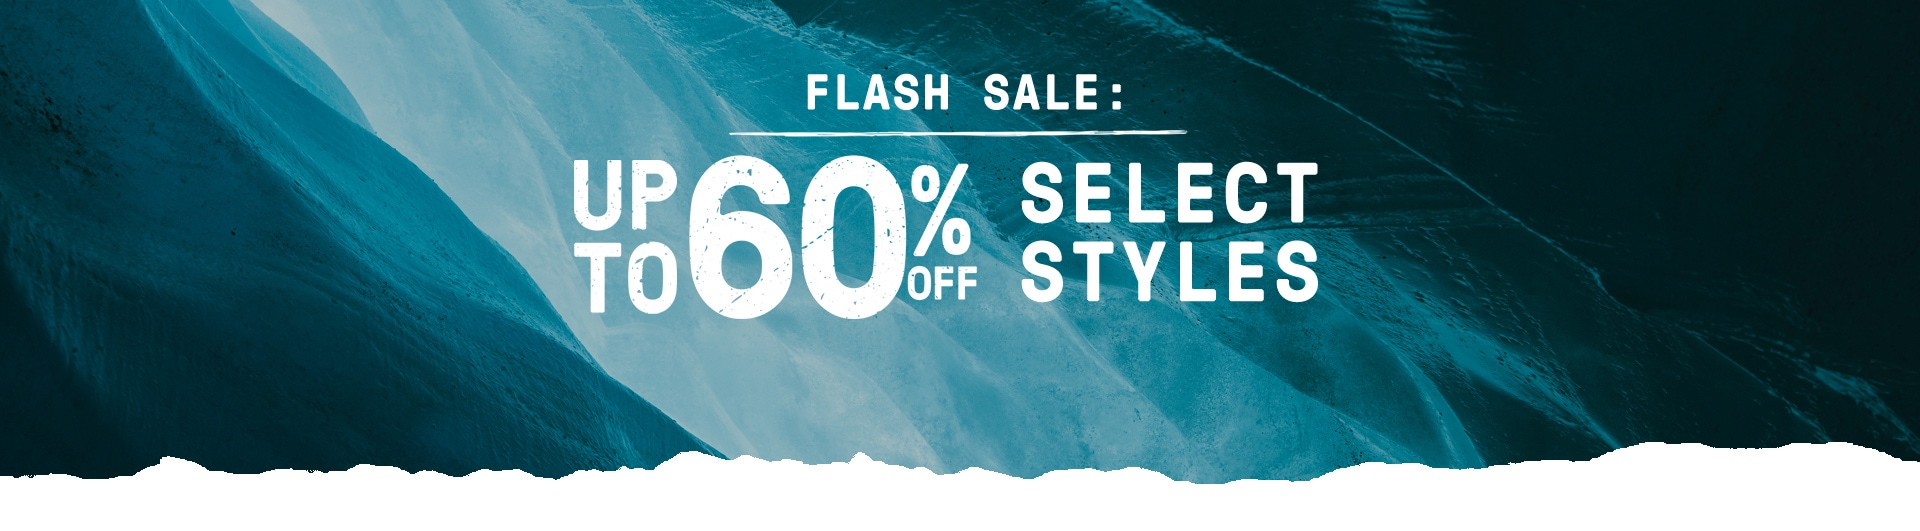 Flash Sale: Up to 60% off select styles.